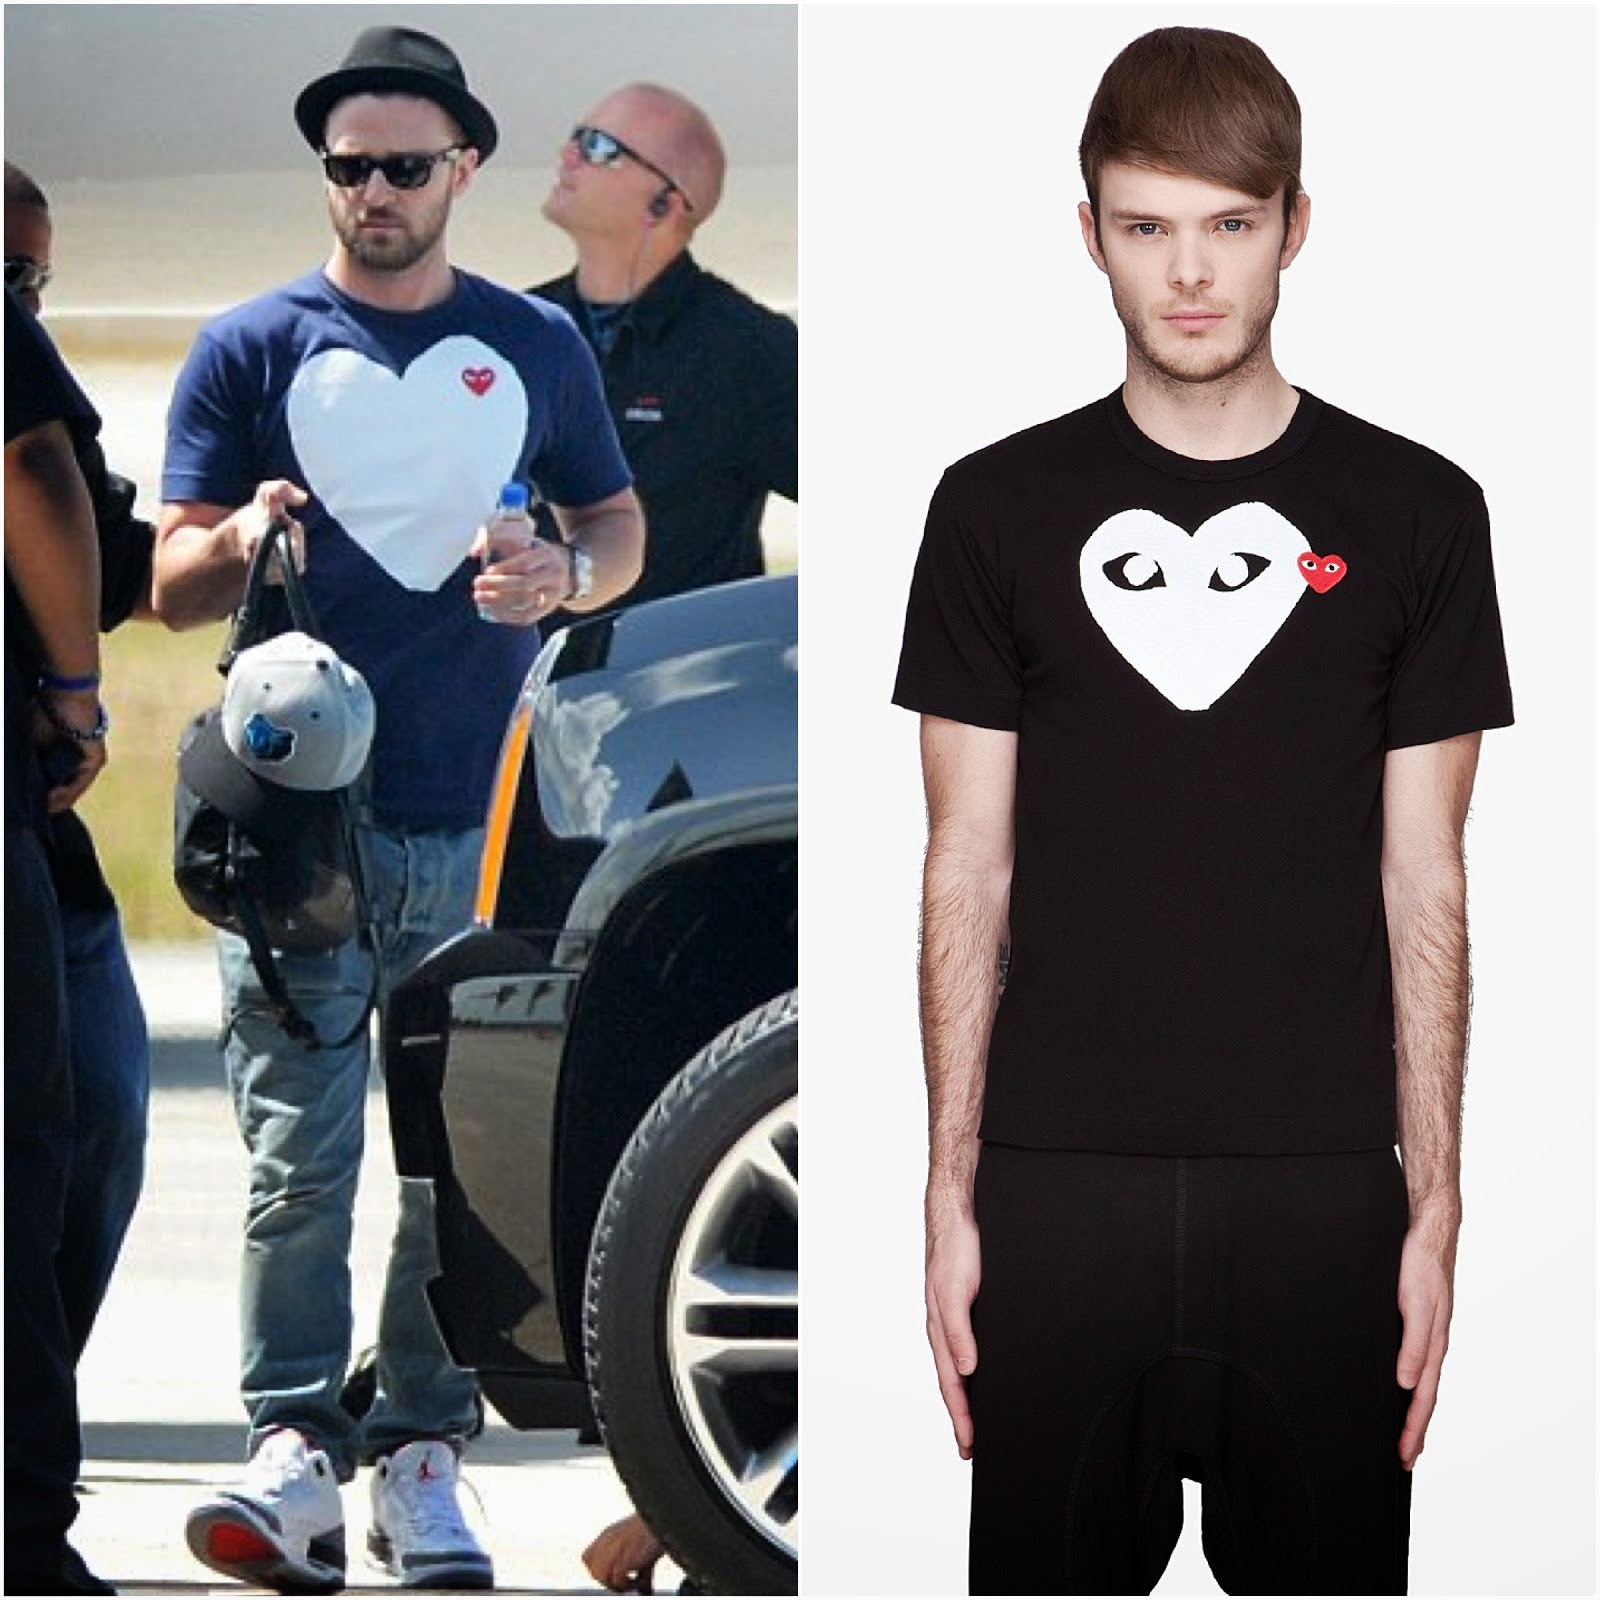 00O00 Menswear Blog http://00O00.blogspot.com Justin Timberlake in COMME DES GARÇONS PLAY - Miami August 2013